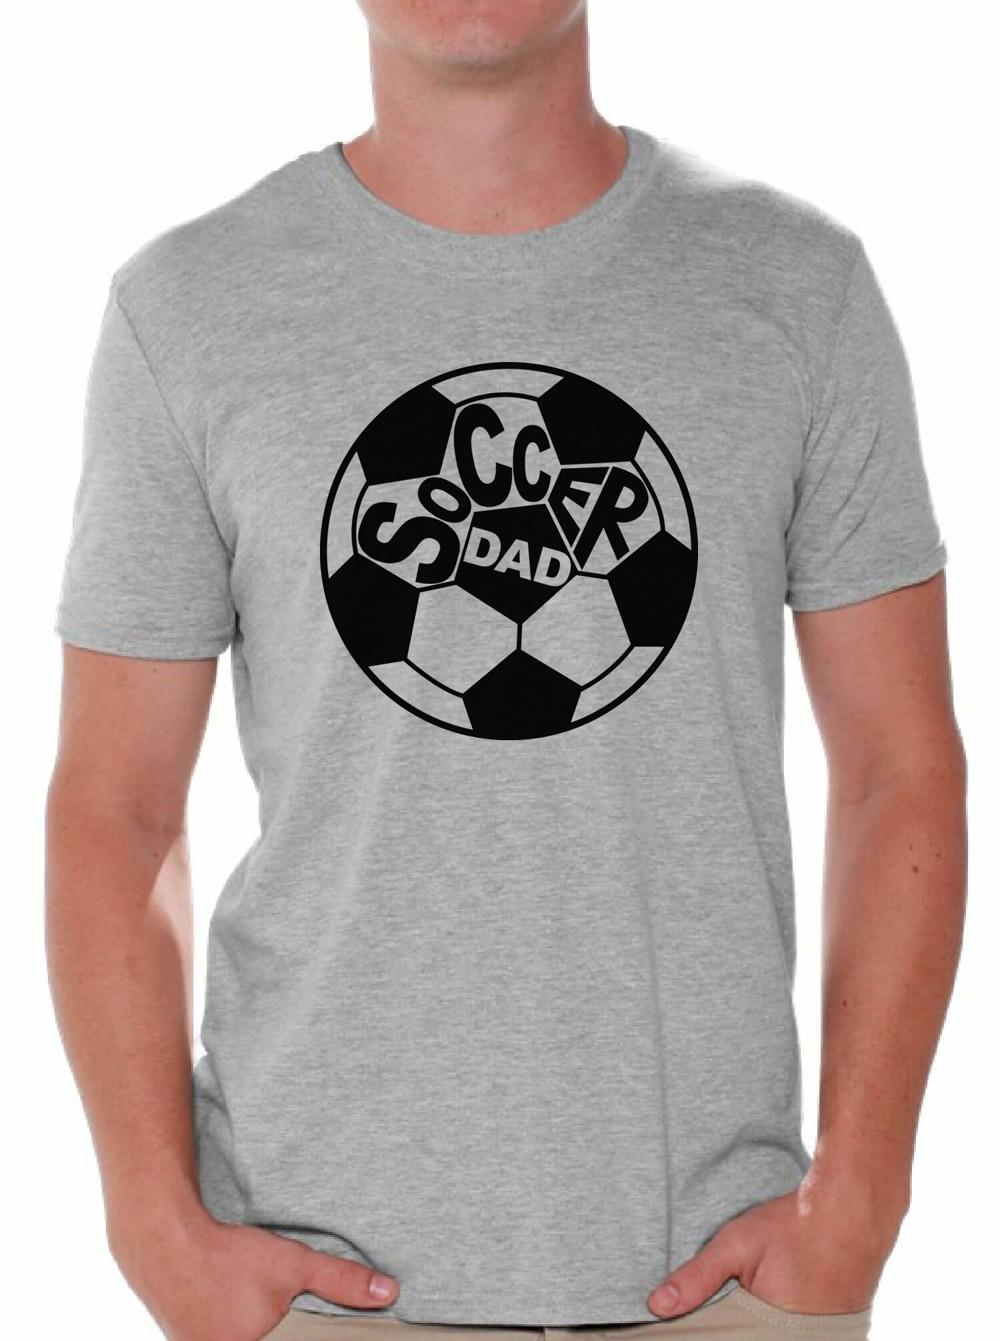 c2577e6b Soccer Dad T Shirt Tops Father's Day Gift Idea Best Soccer Player ...